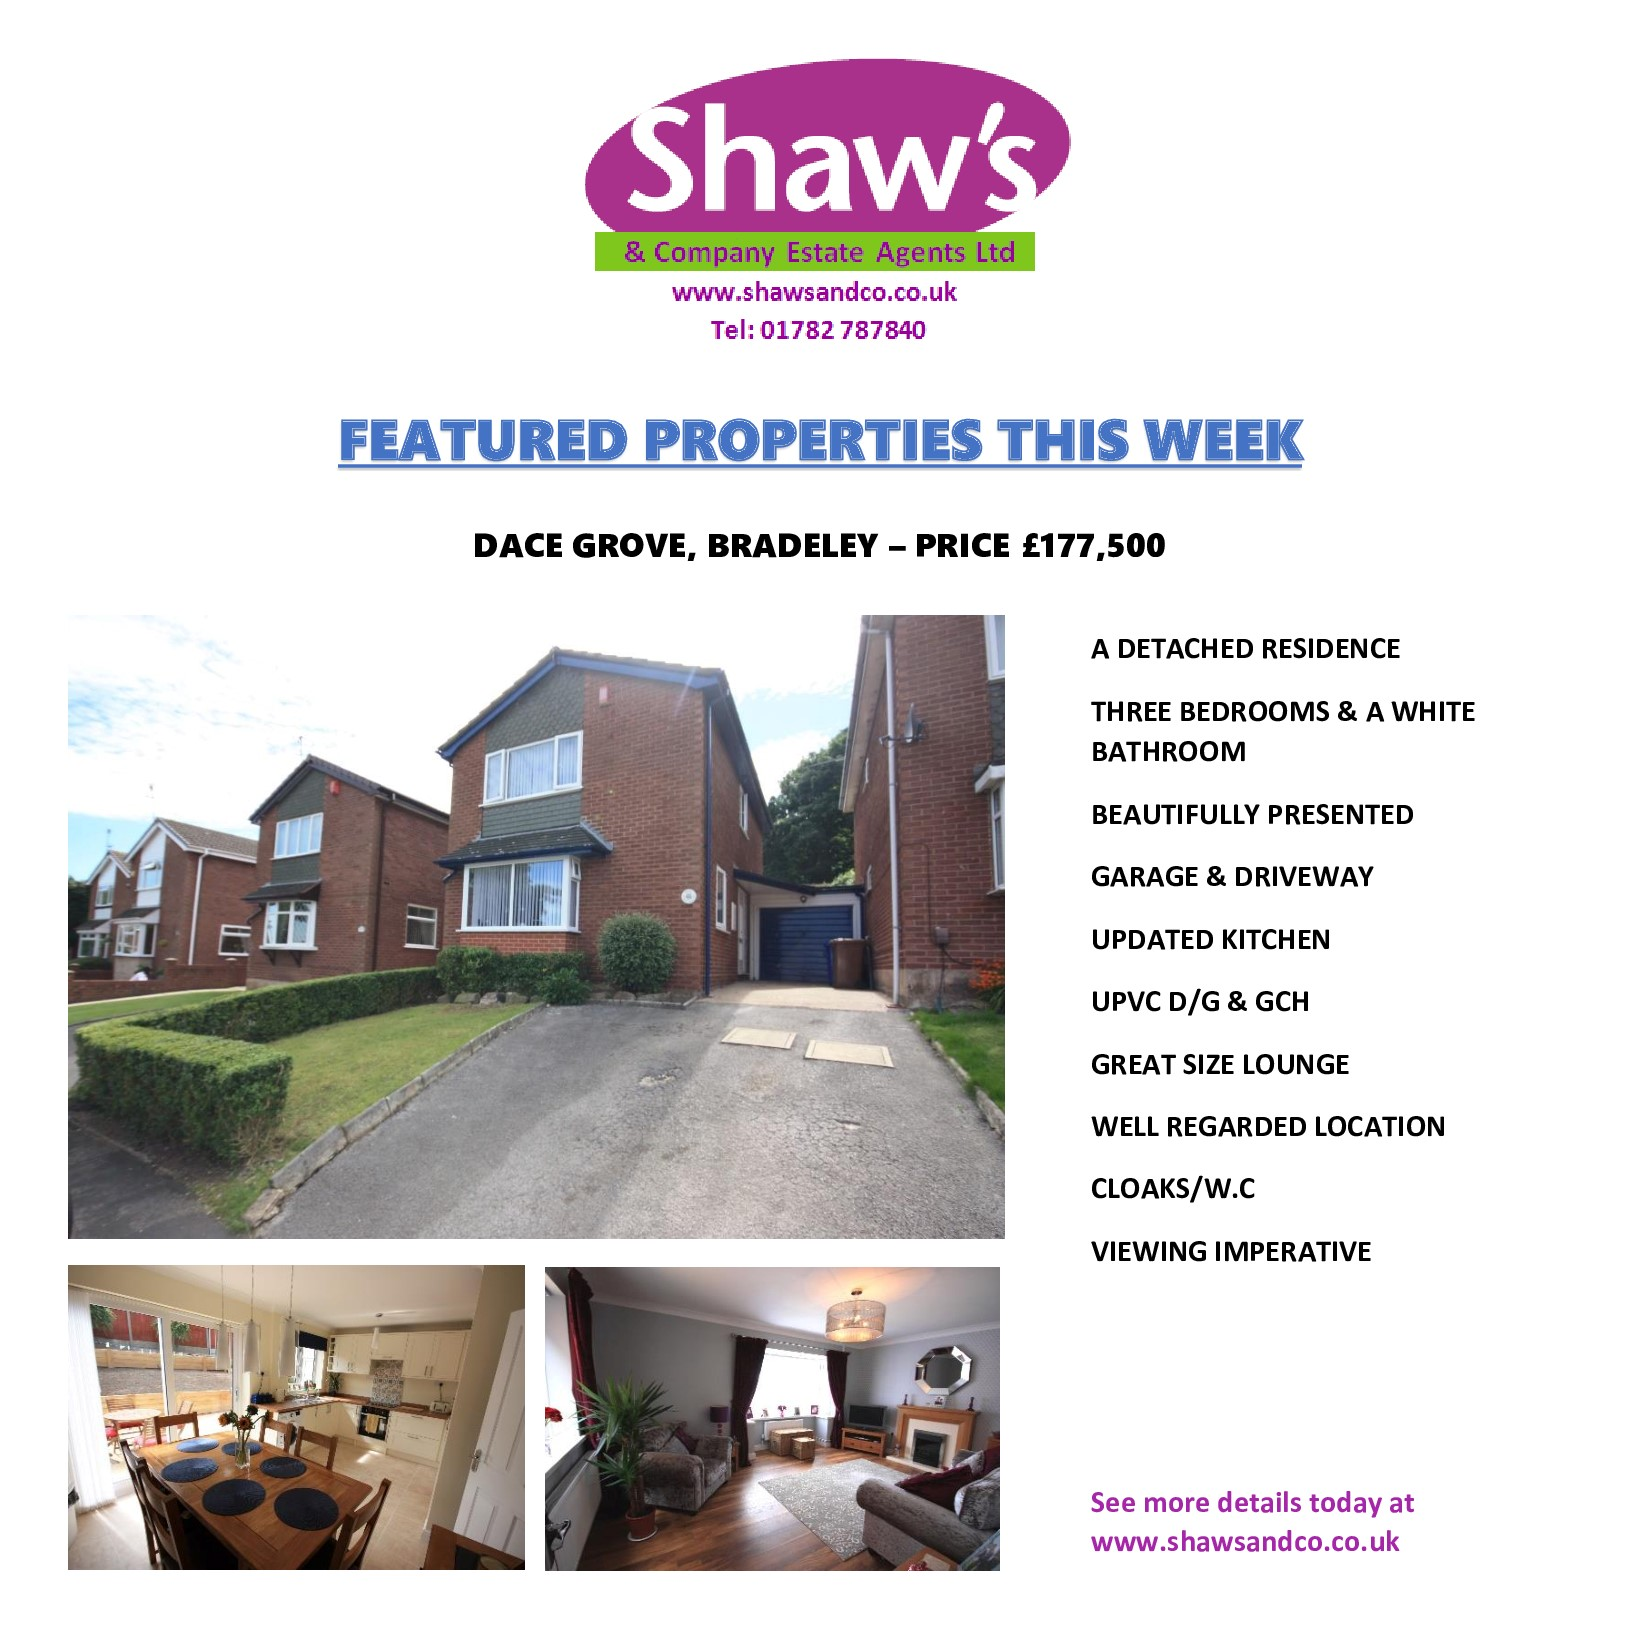 NEW ON THE MARKET THIS WEEK!